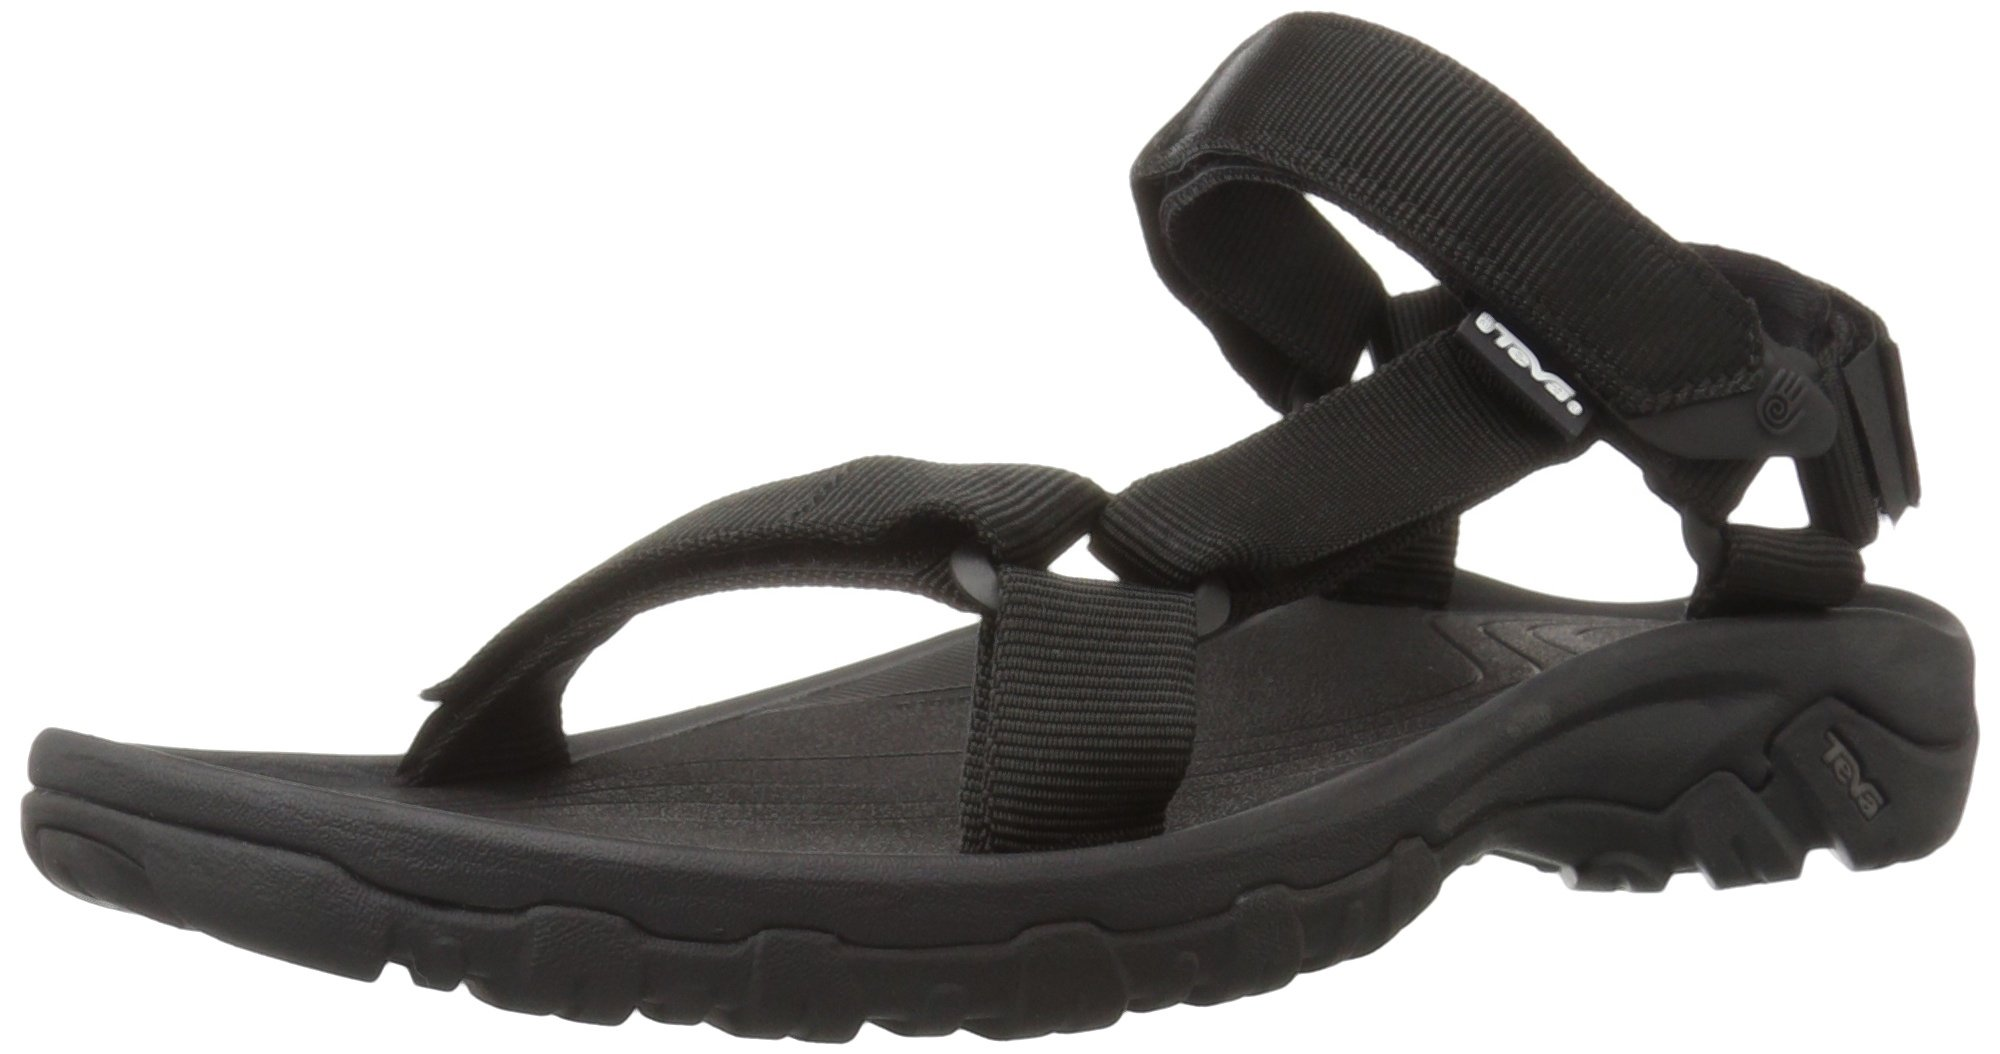 f62c6b26e Teva Men s Hurricane XLT Sandals Black  Amazon.ca  Shoes   Handbags